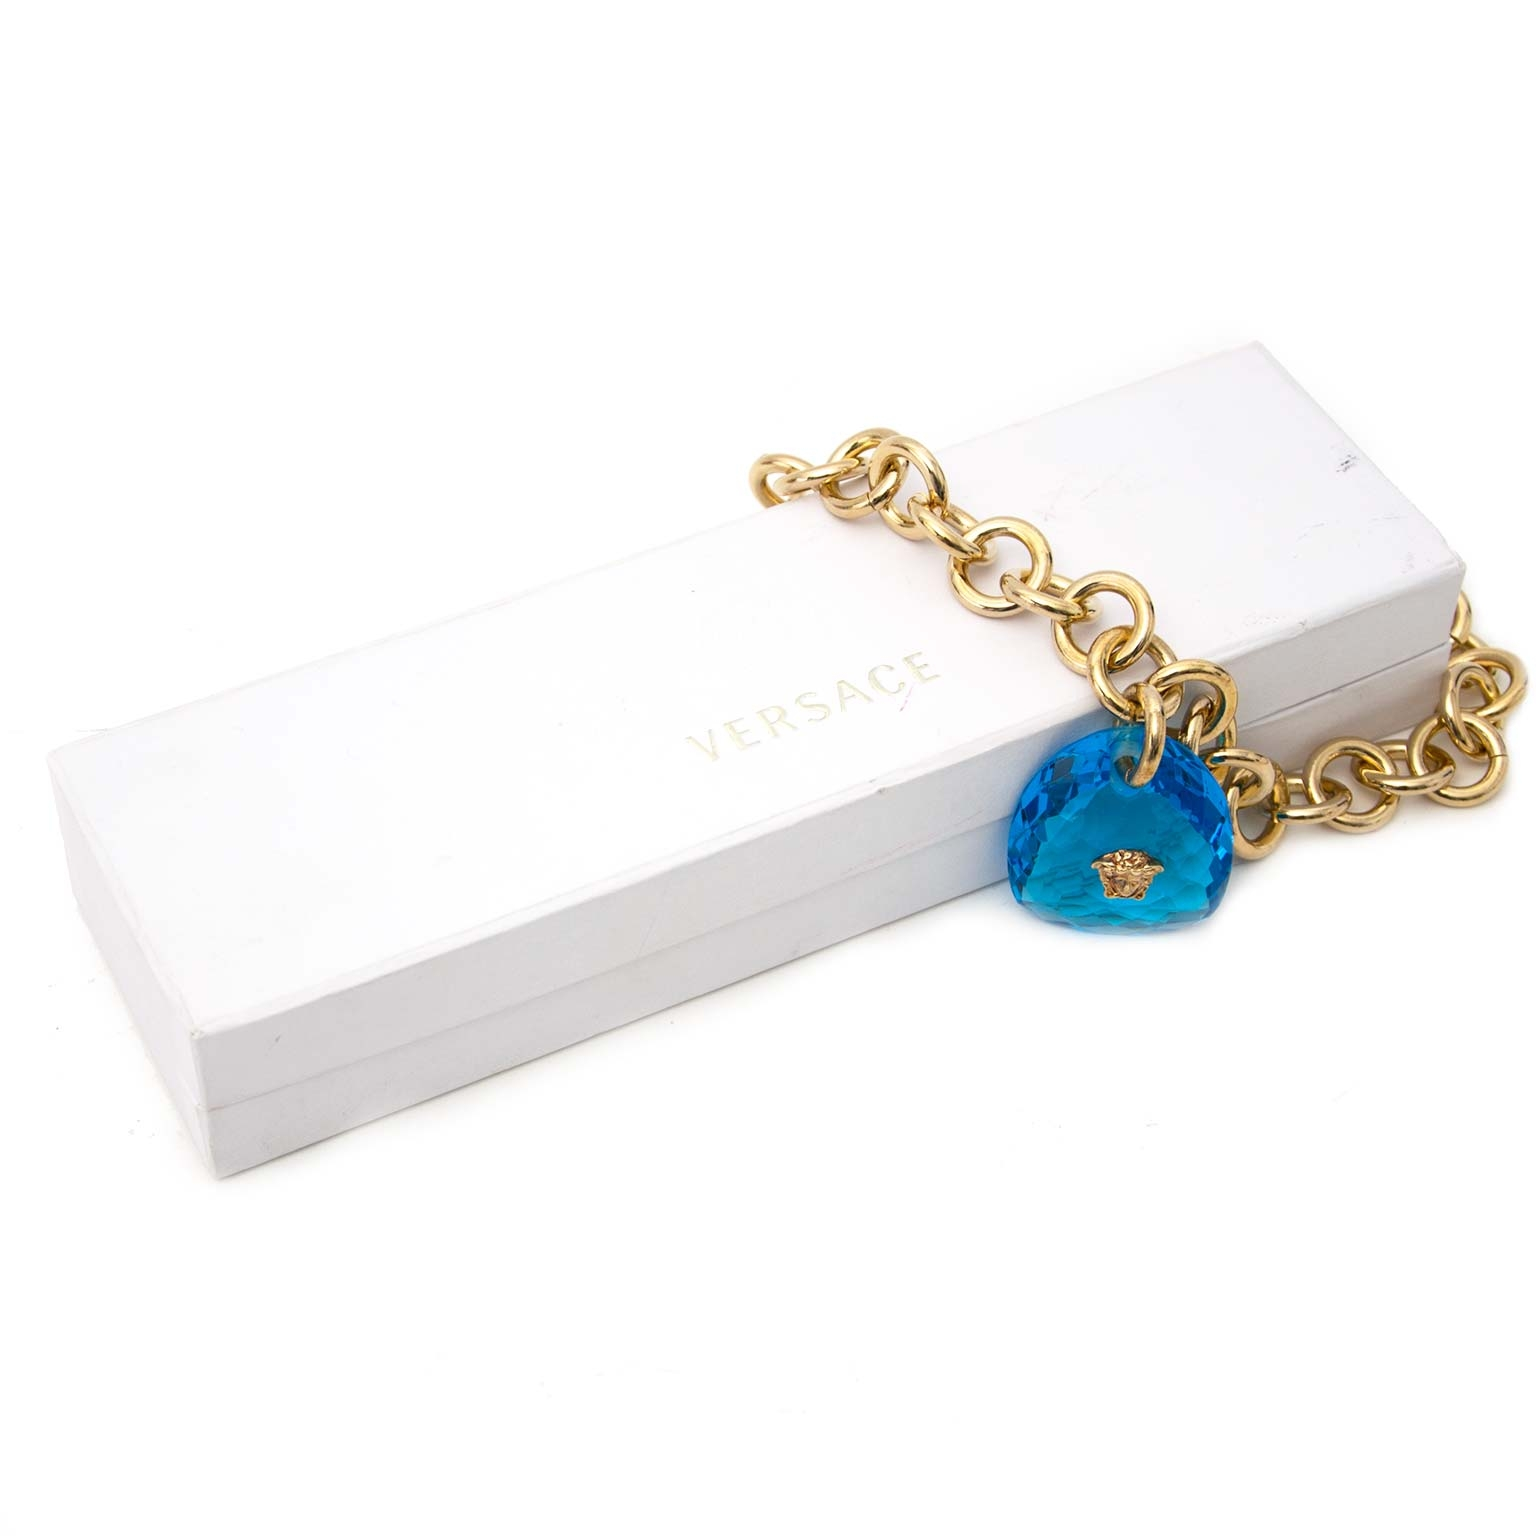 Versace Gold Chain Blue Stone Medusa Necklace Buy authentic designer versace secondhand necklaces jewelry at Labellov at the best price. Safe and secure shopping. Koop tweedehands authentieke Versace halsketting bij designer webwinkel labellov.